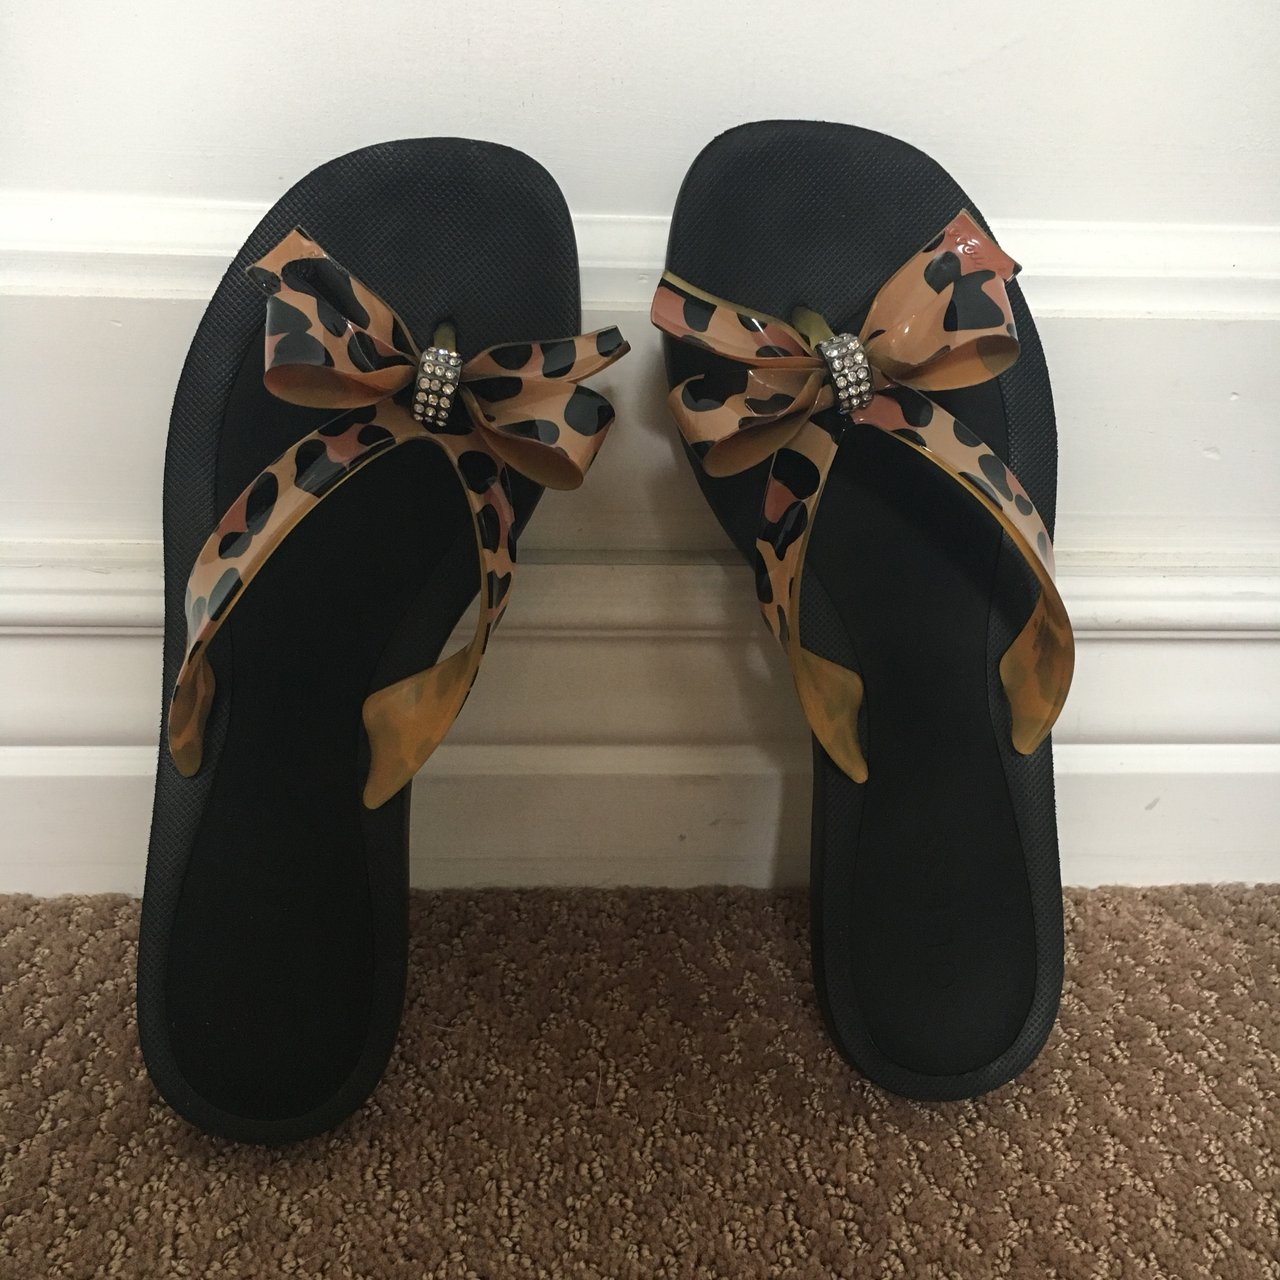 3e44b846d965 Women s GUESS sandals. Size 6. Cute bow design. These are a - Depop